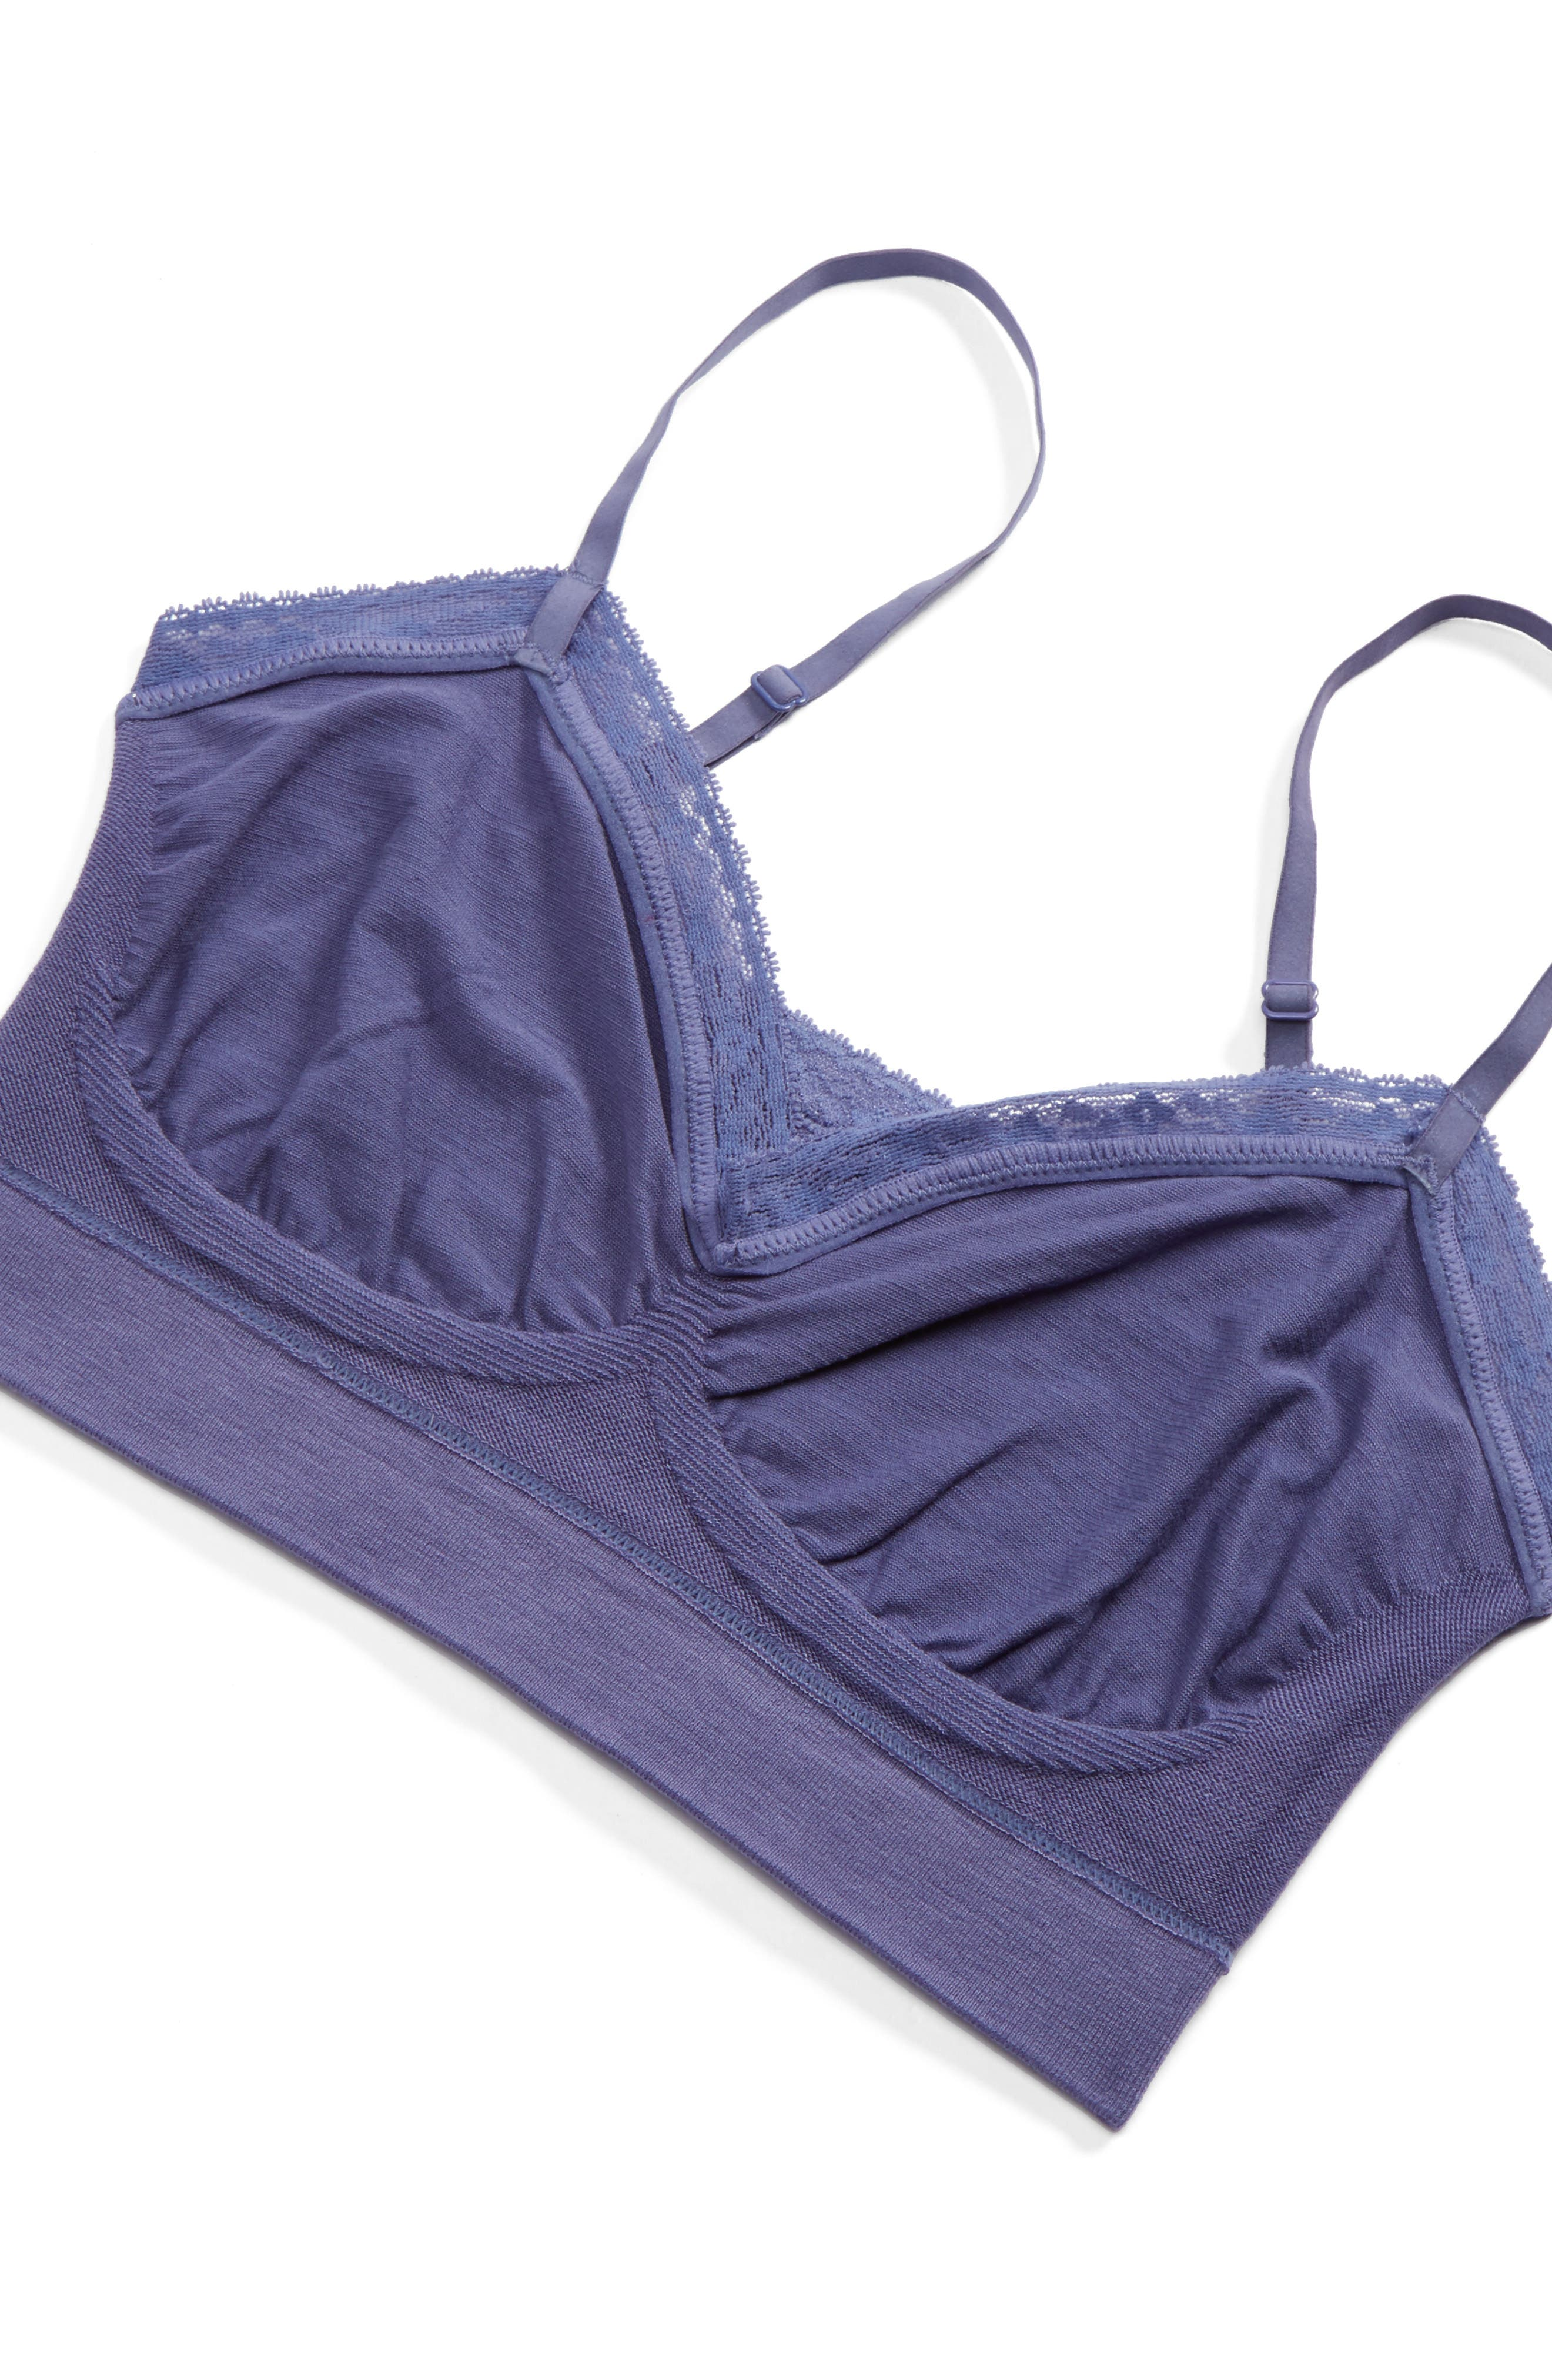 Day Bralette,                             Alternate thumbnail 4, color,                             431